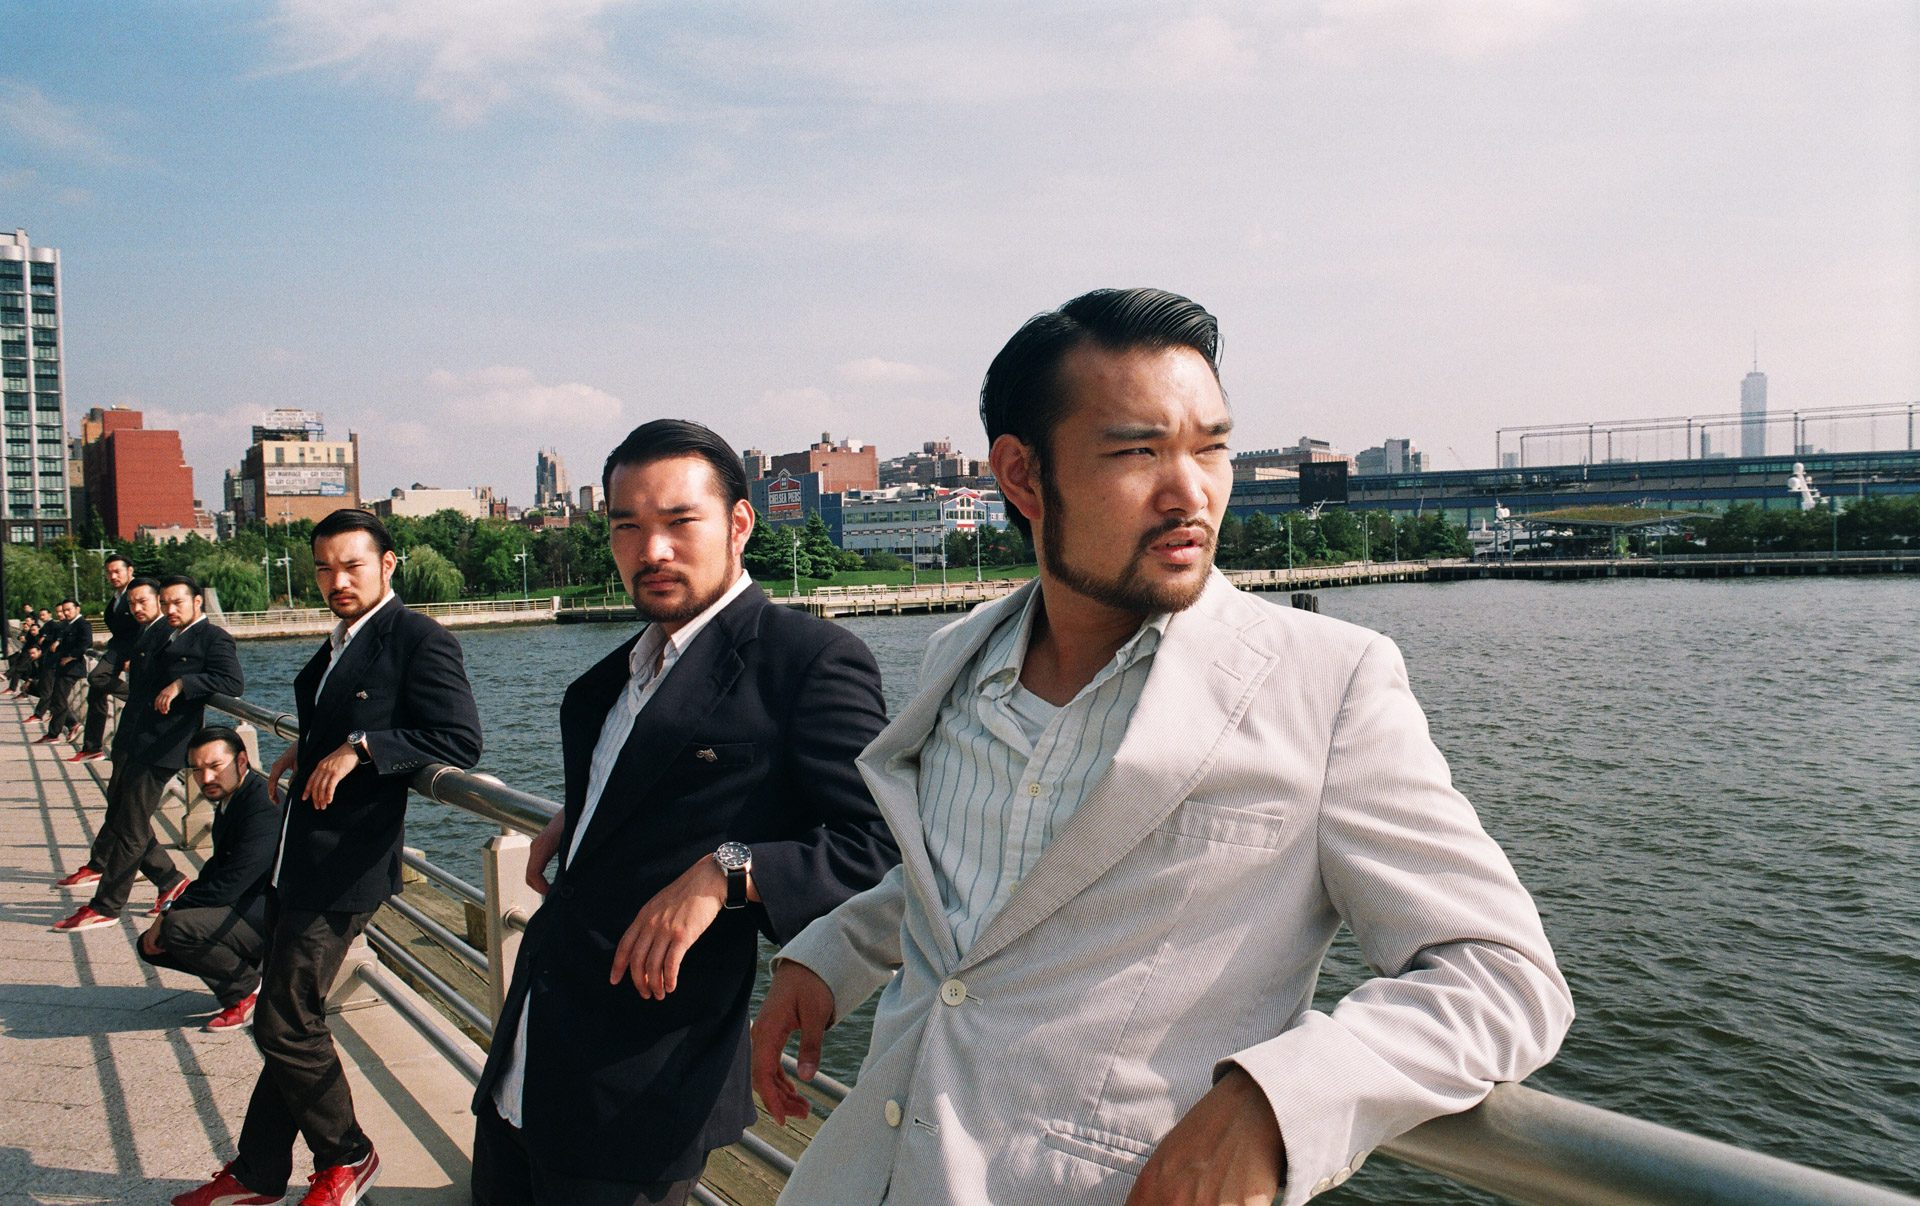 A group of asian men in dark suits looking at the camera, same asian in a white jacket looking away.